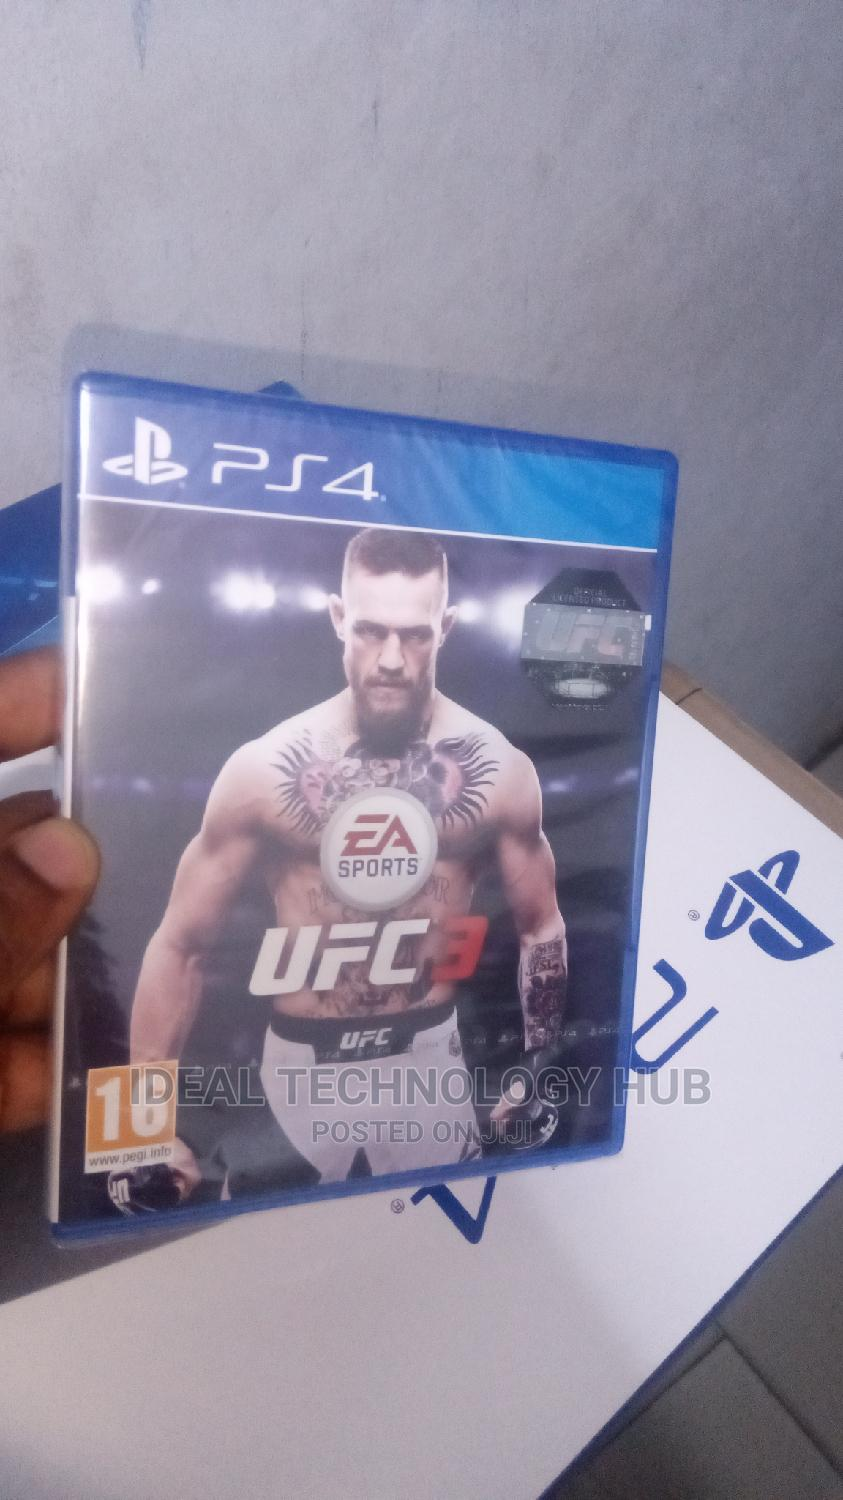 Sony Ps4 UFC 3 Game